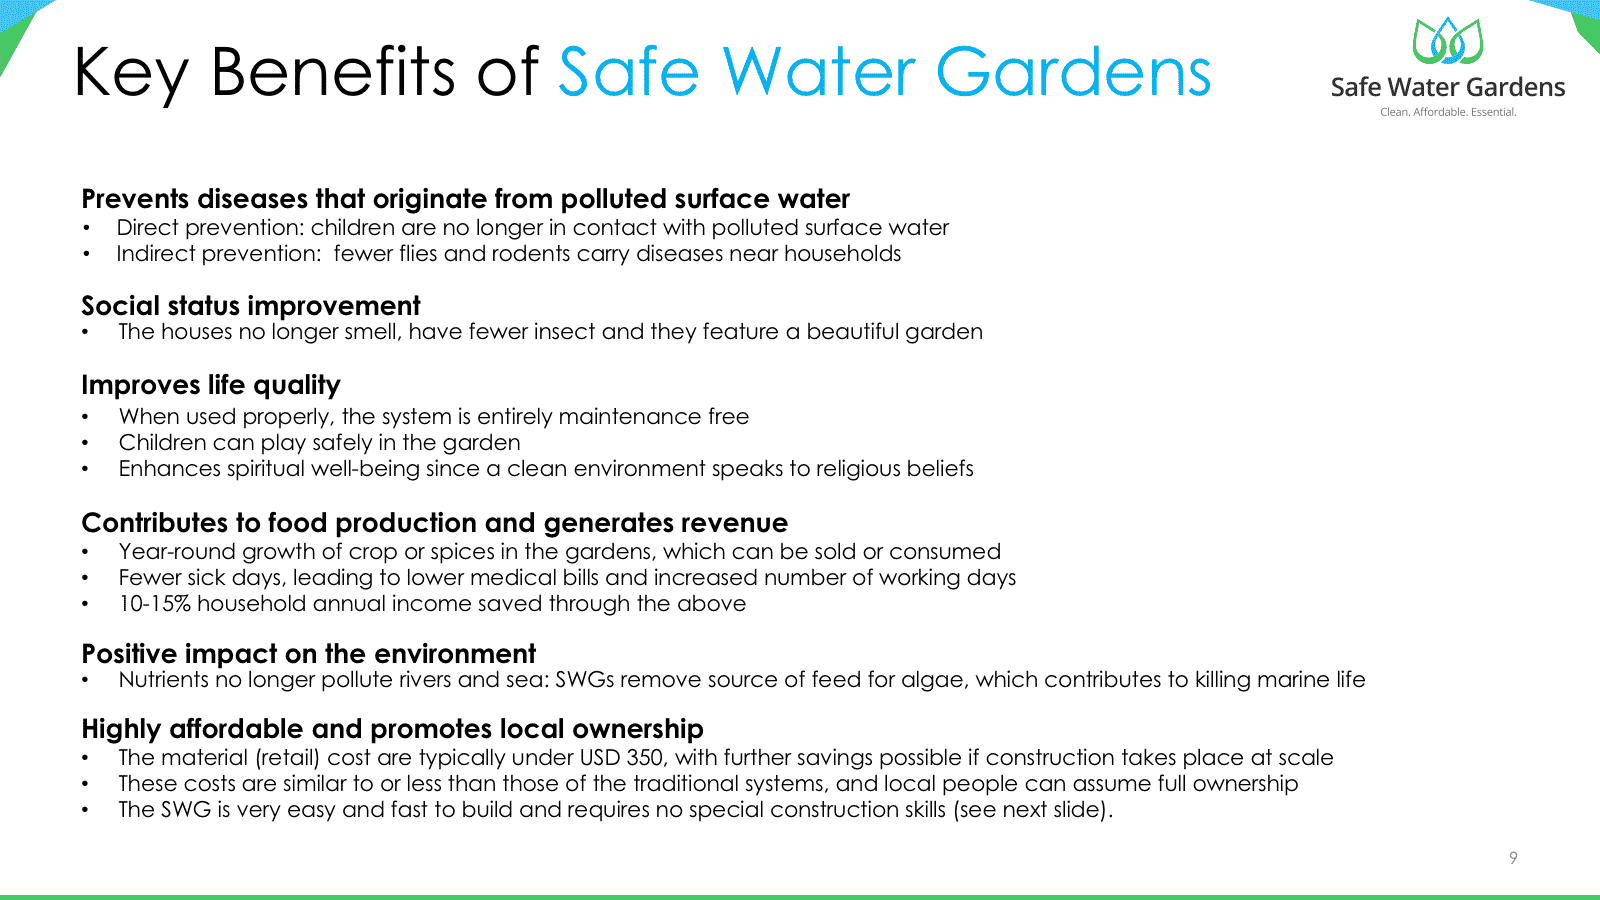 Key benefits of Safe Water Gardens